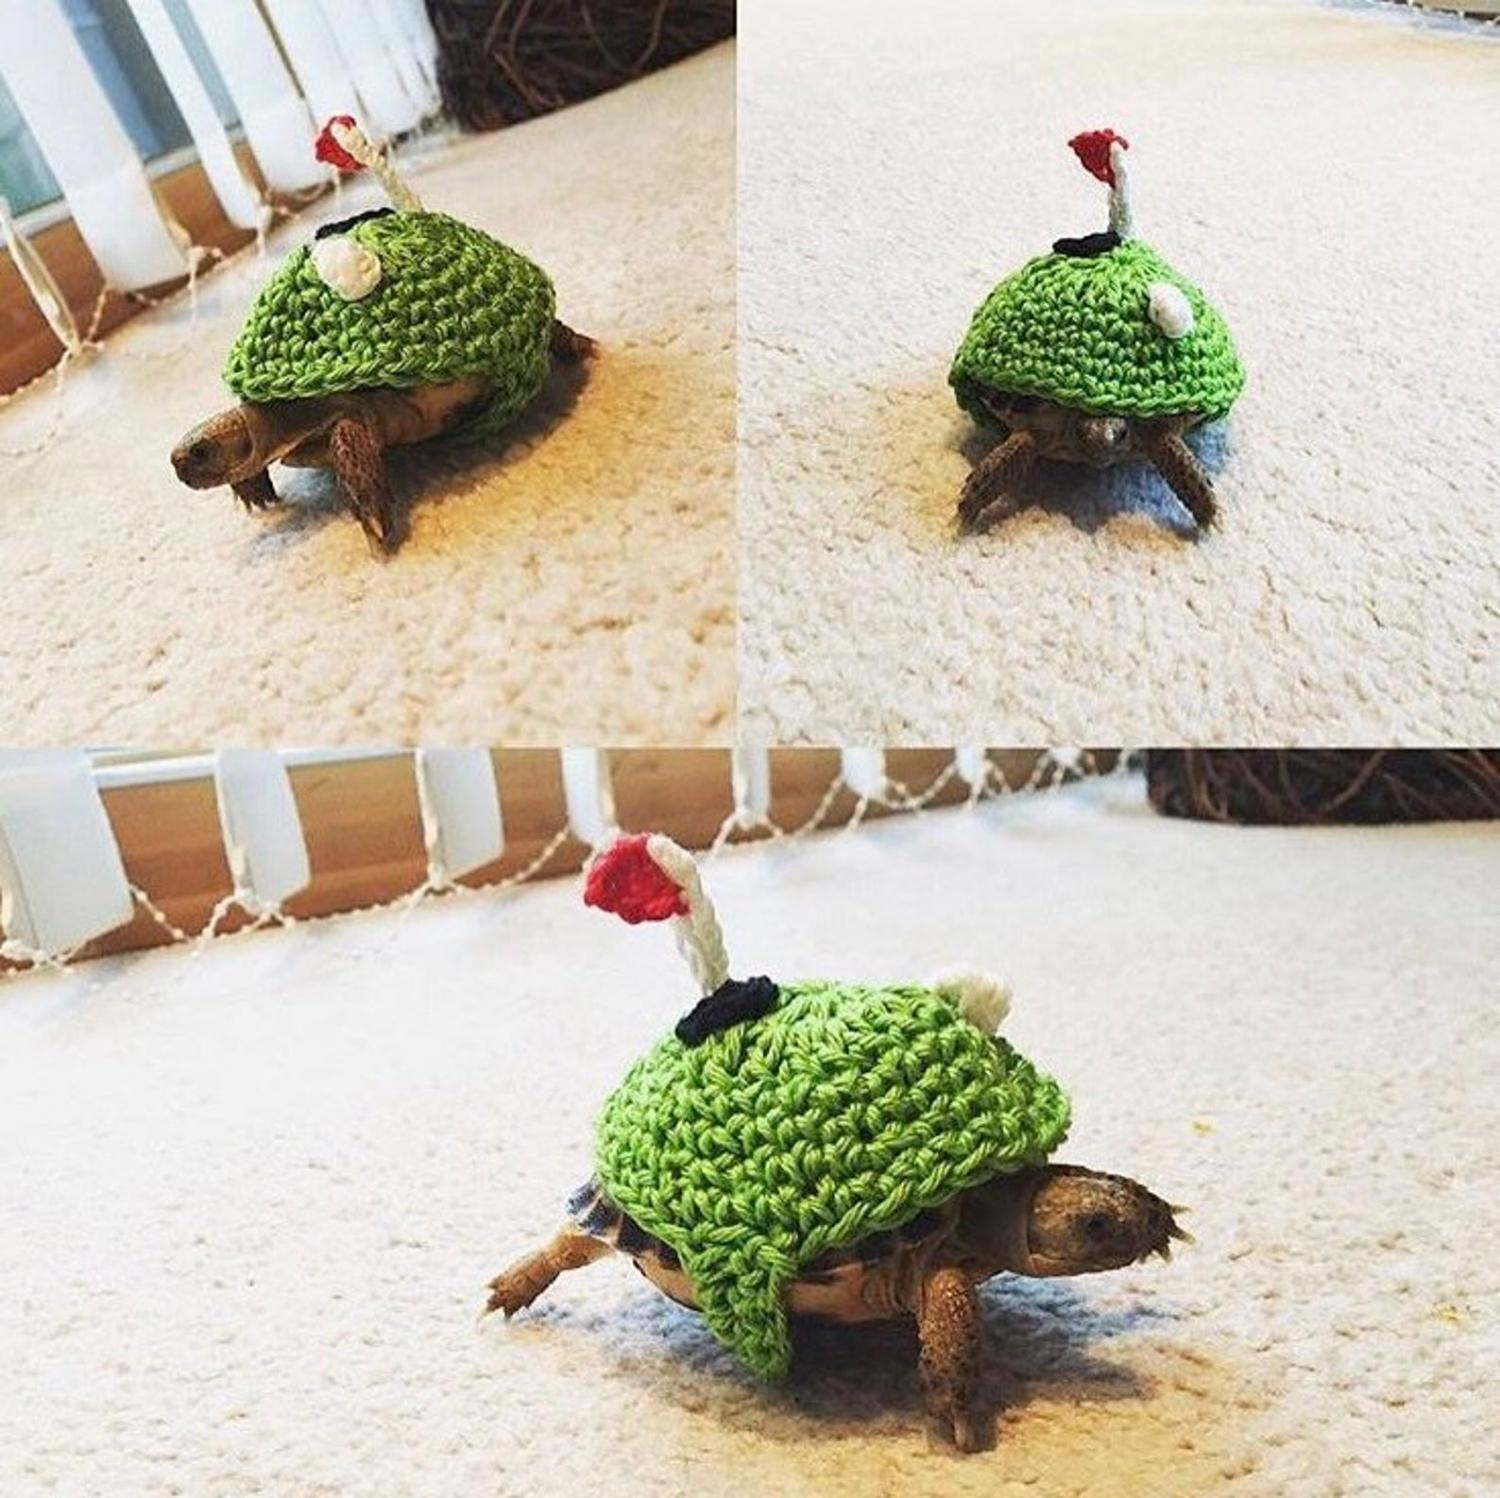 Crochet Turtle Sweater - Golf Course tortoise cozy